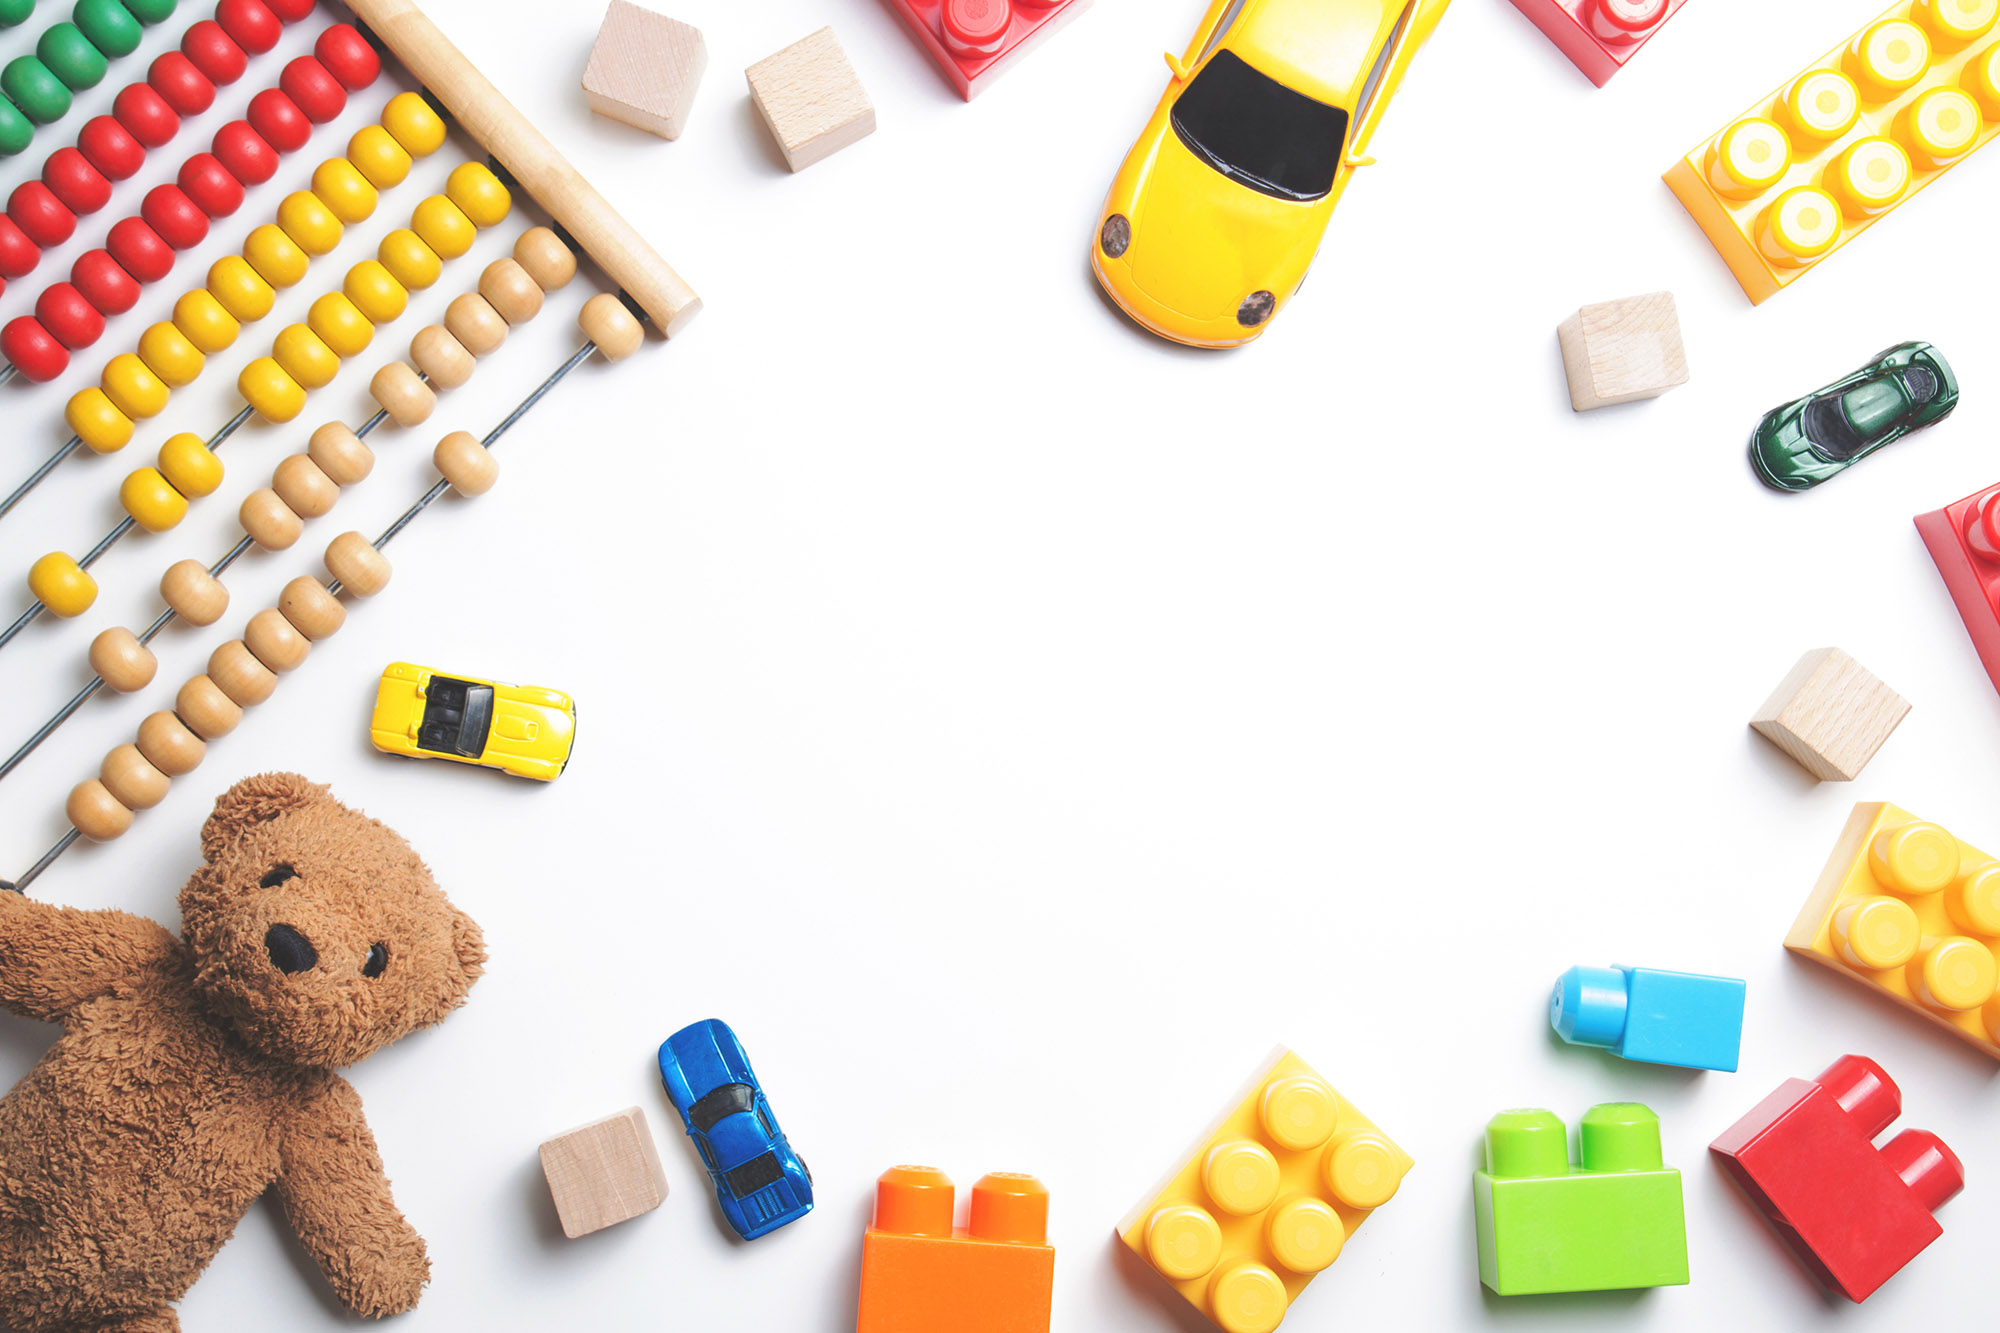 manufacturer and distributor of children's toys and games participates in an asset based loan